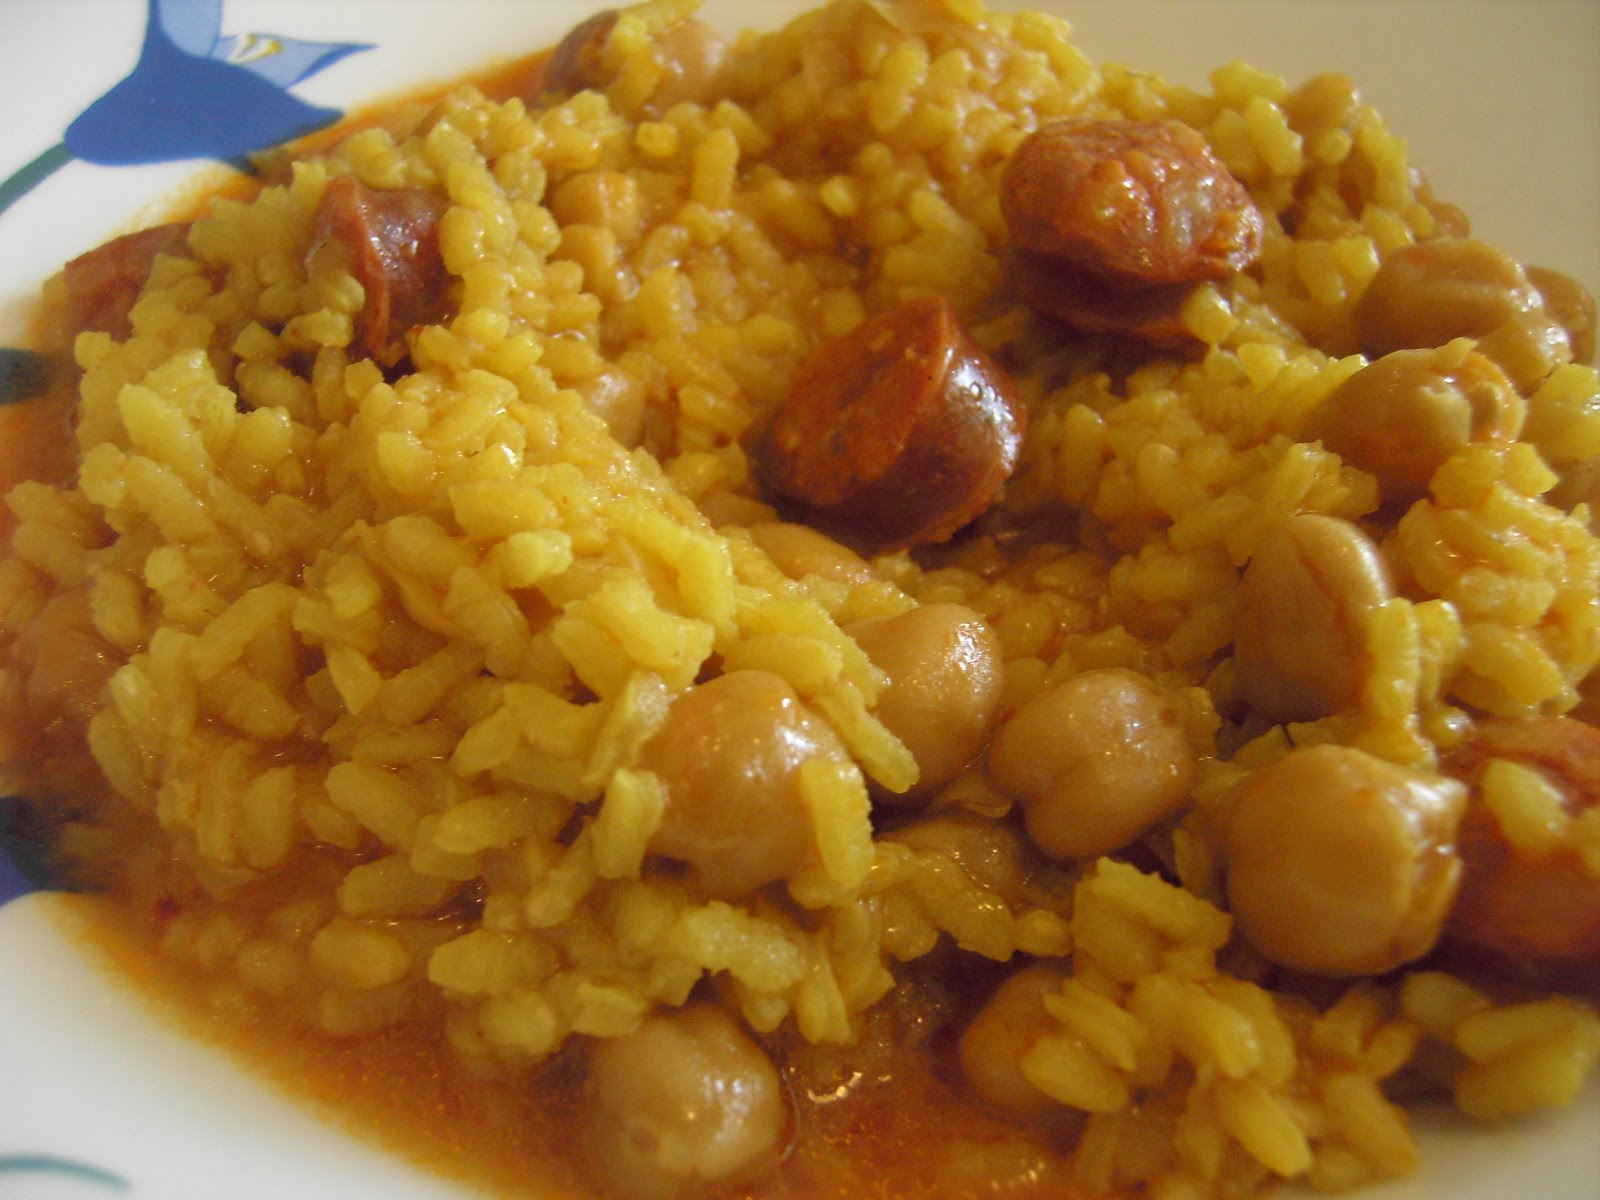 Panaceite garbanzos con arroz - Potaje garbanzos con arroz ...